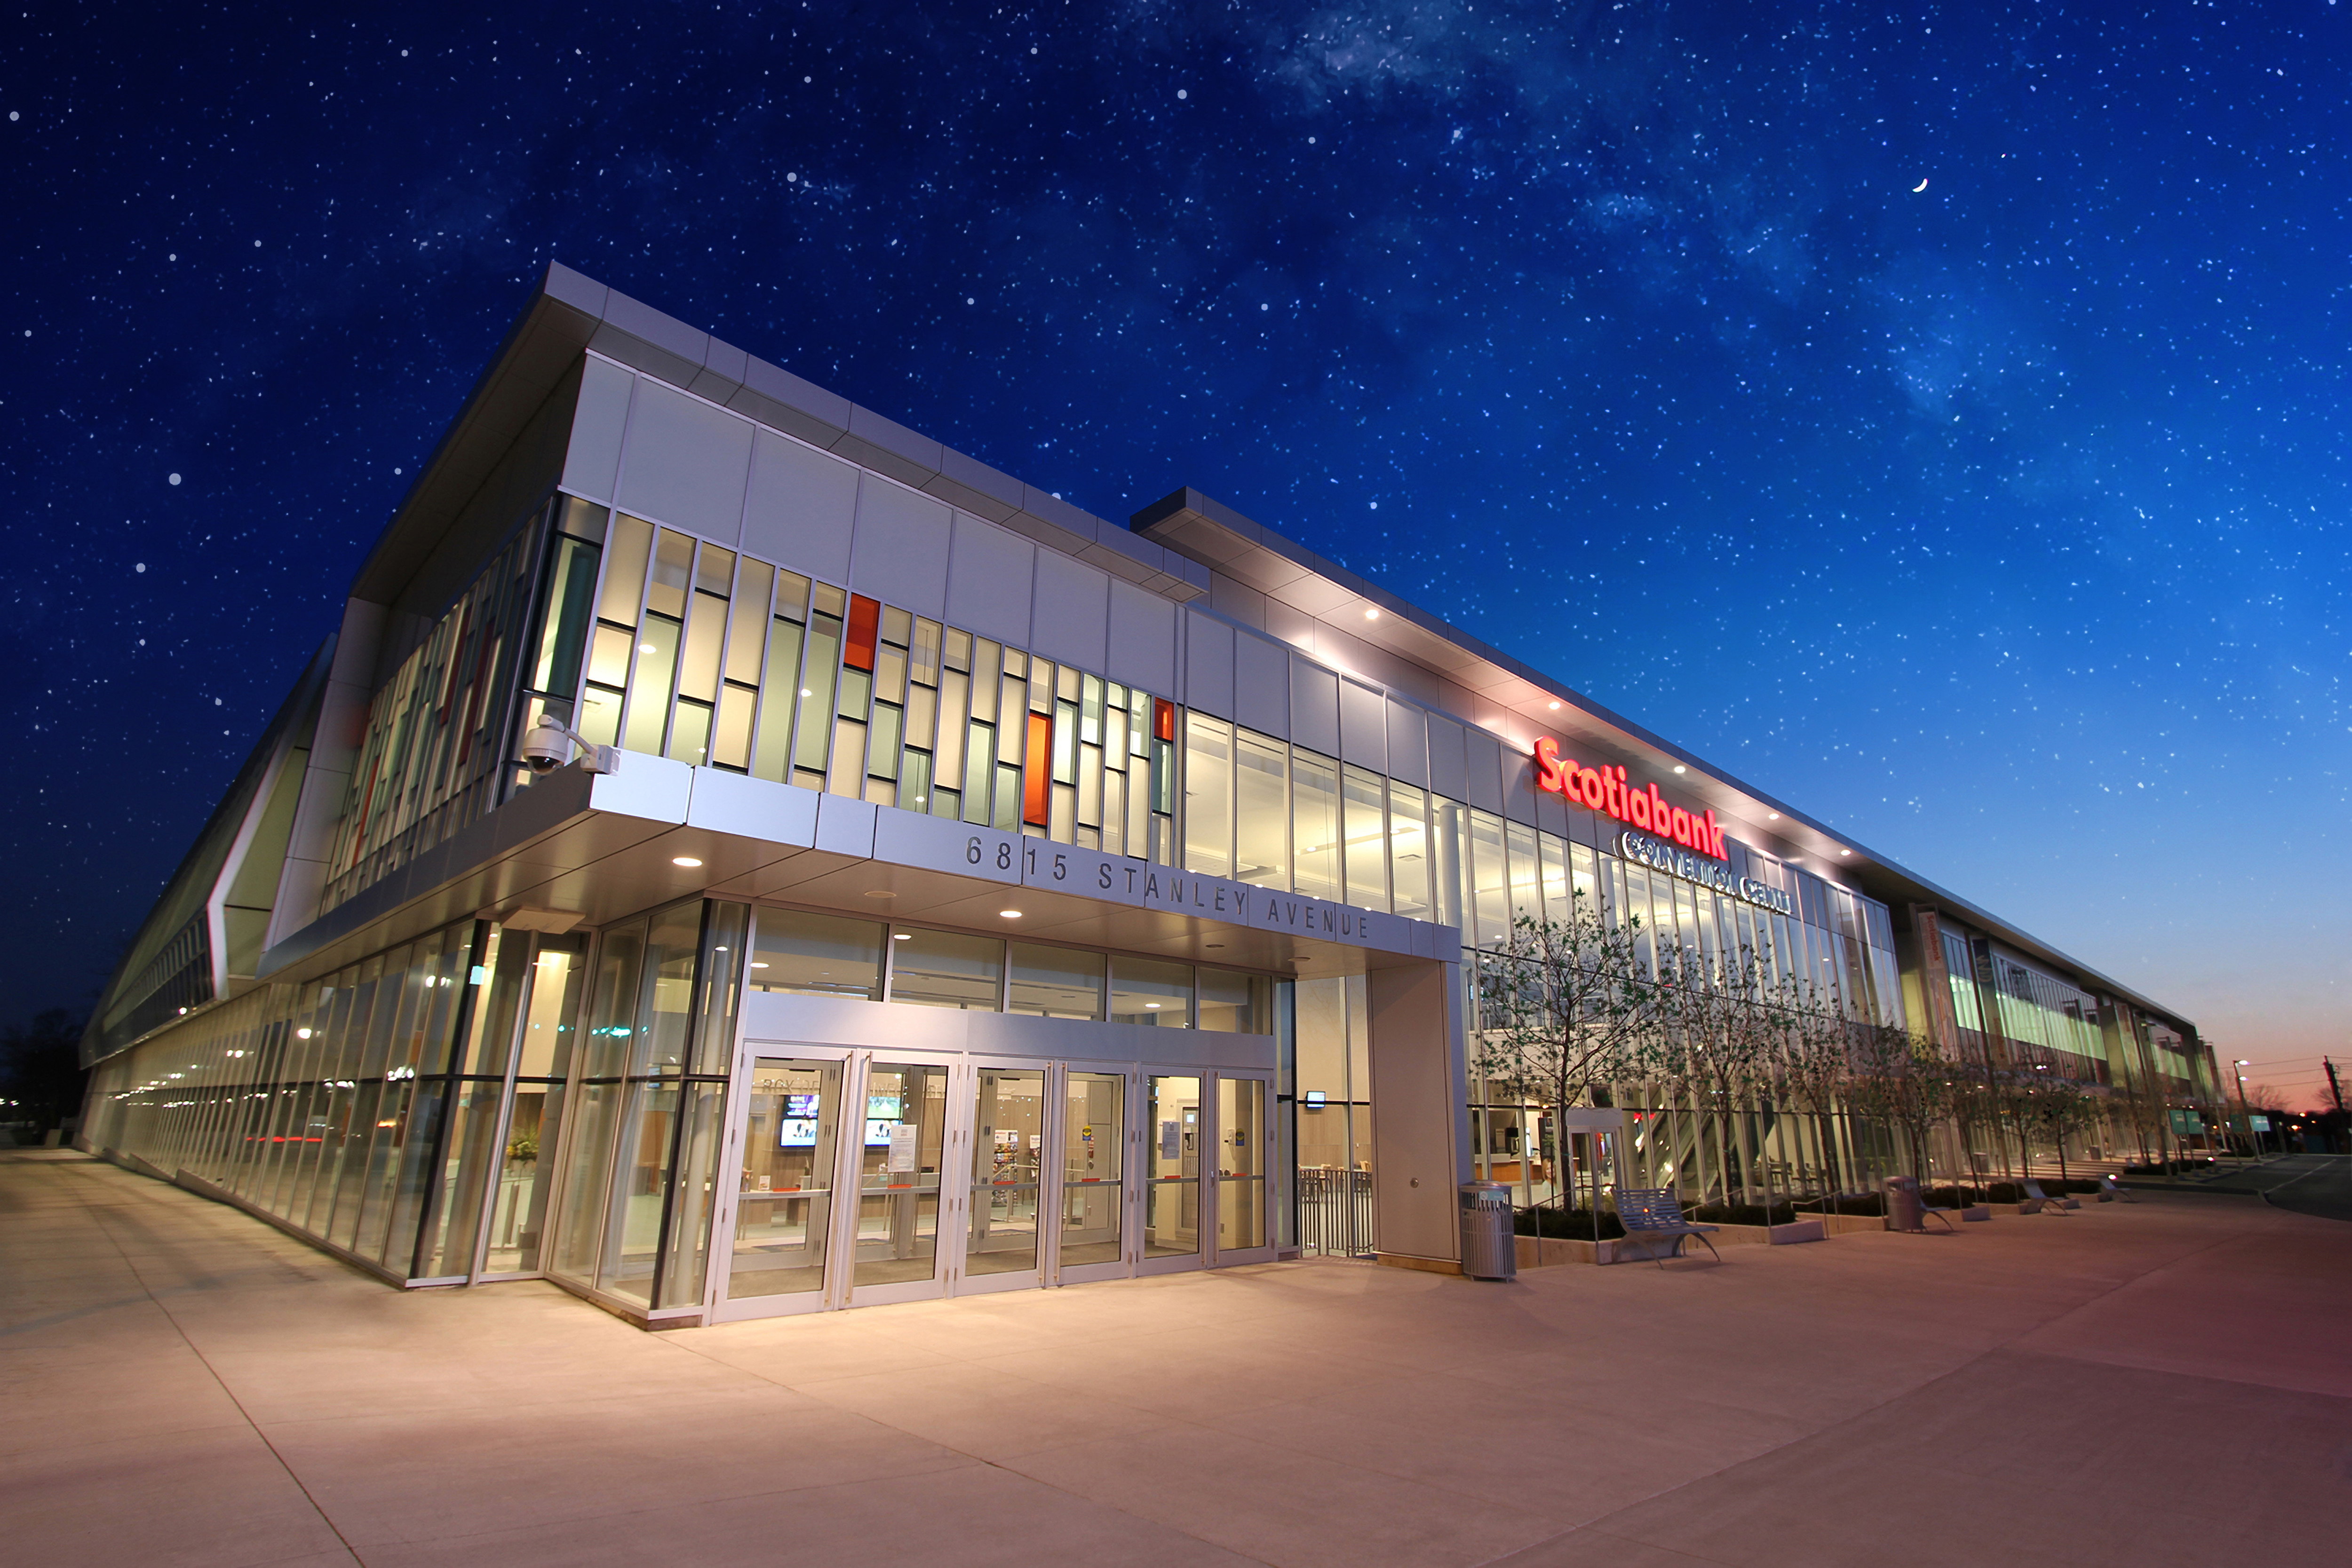 Scotiabank-Convention-Centre-2